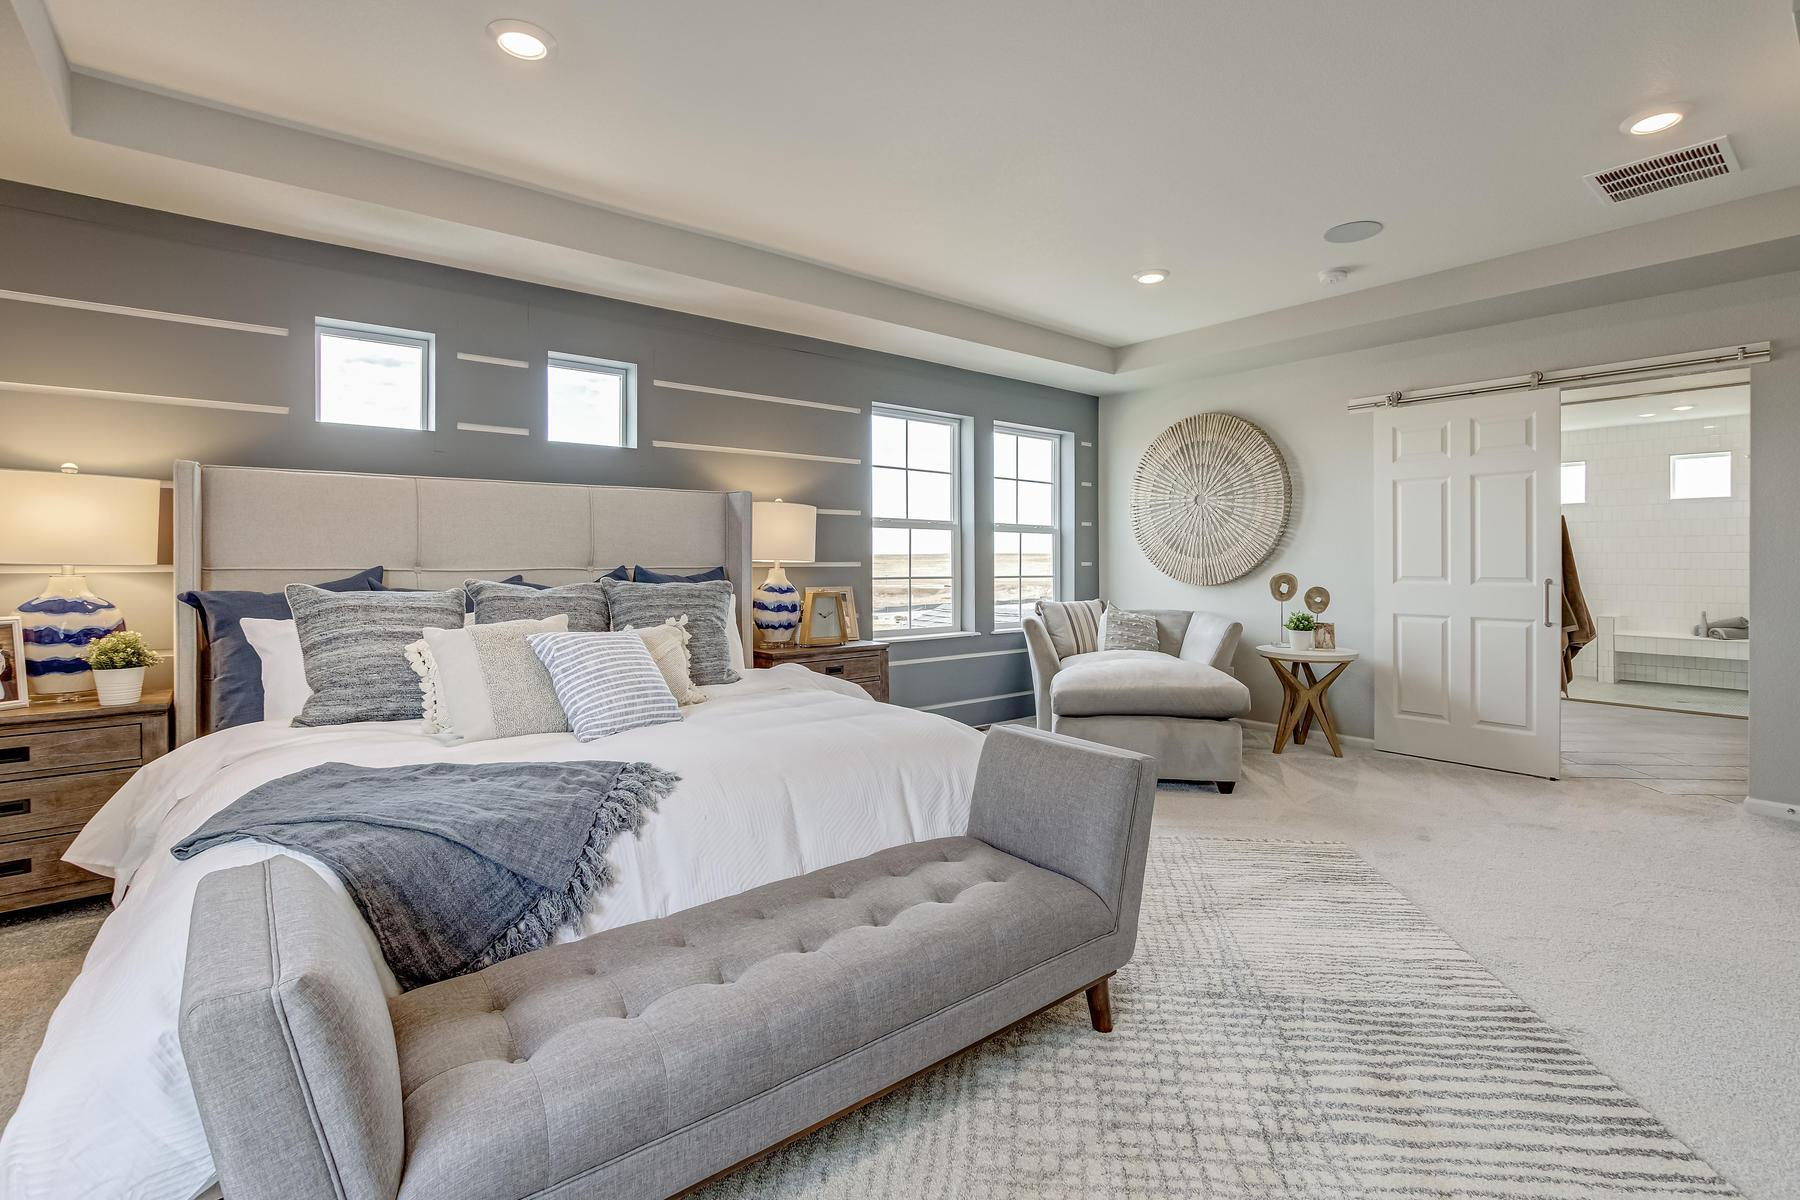 Bedroom featured in the Brighton By Oakwood Homes Colorado in Denver, CO